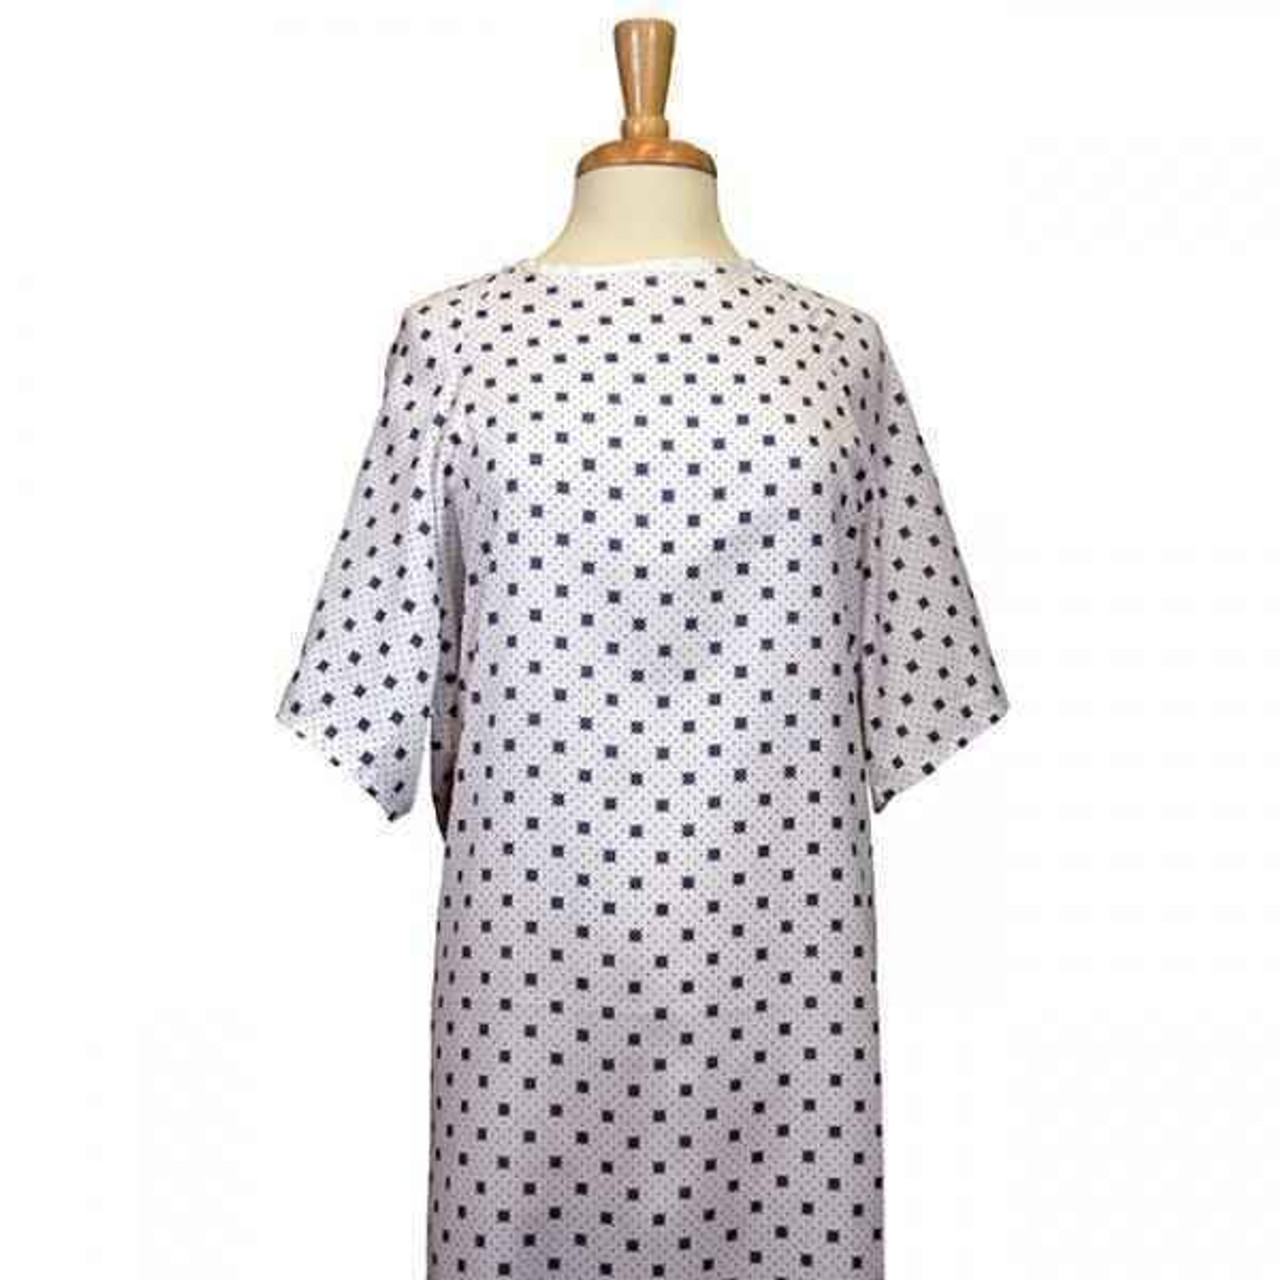 Overlap Patient Gown or Blue or Green Snow Flake Pattern or 1 DZ